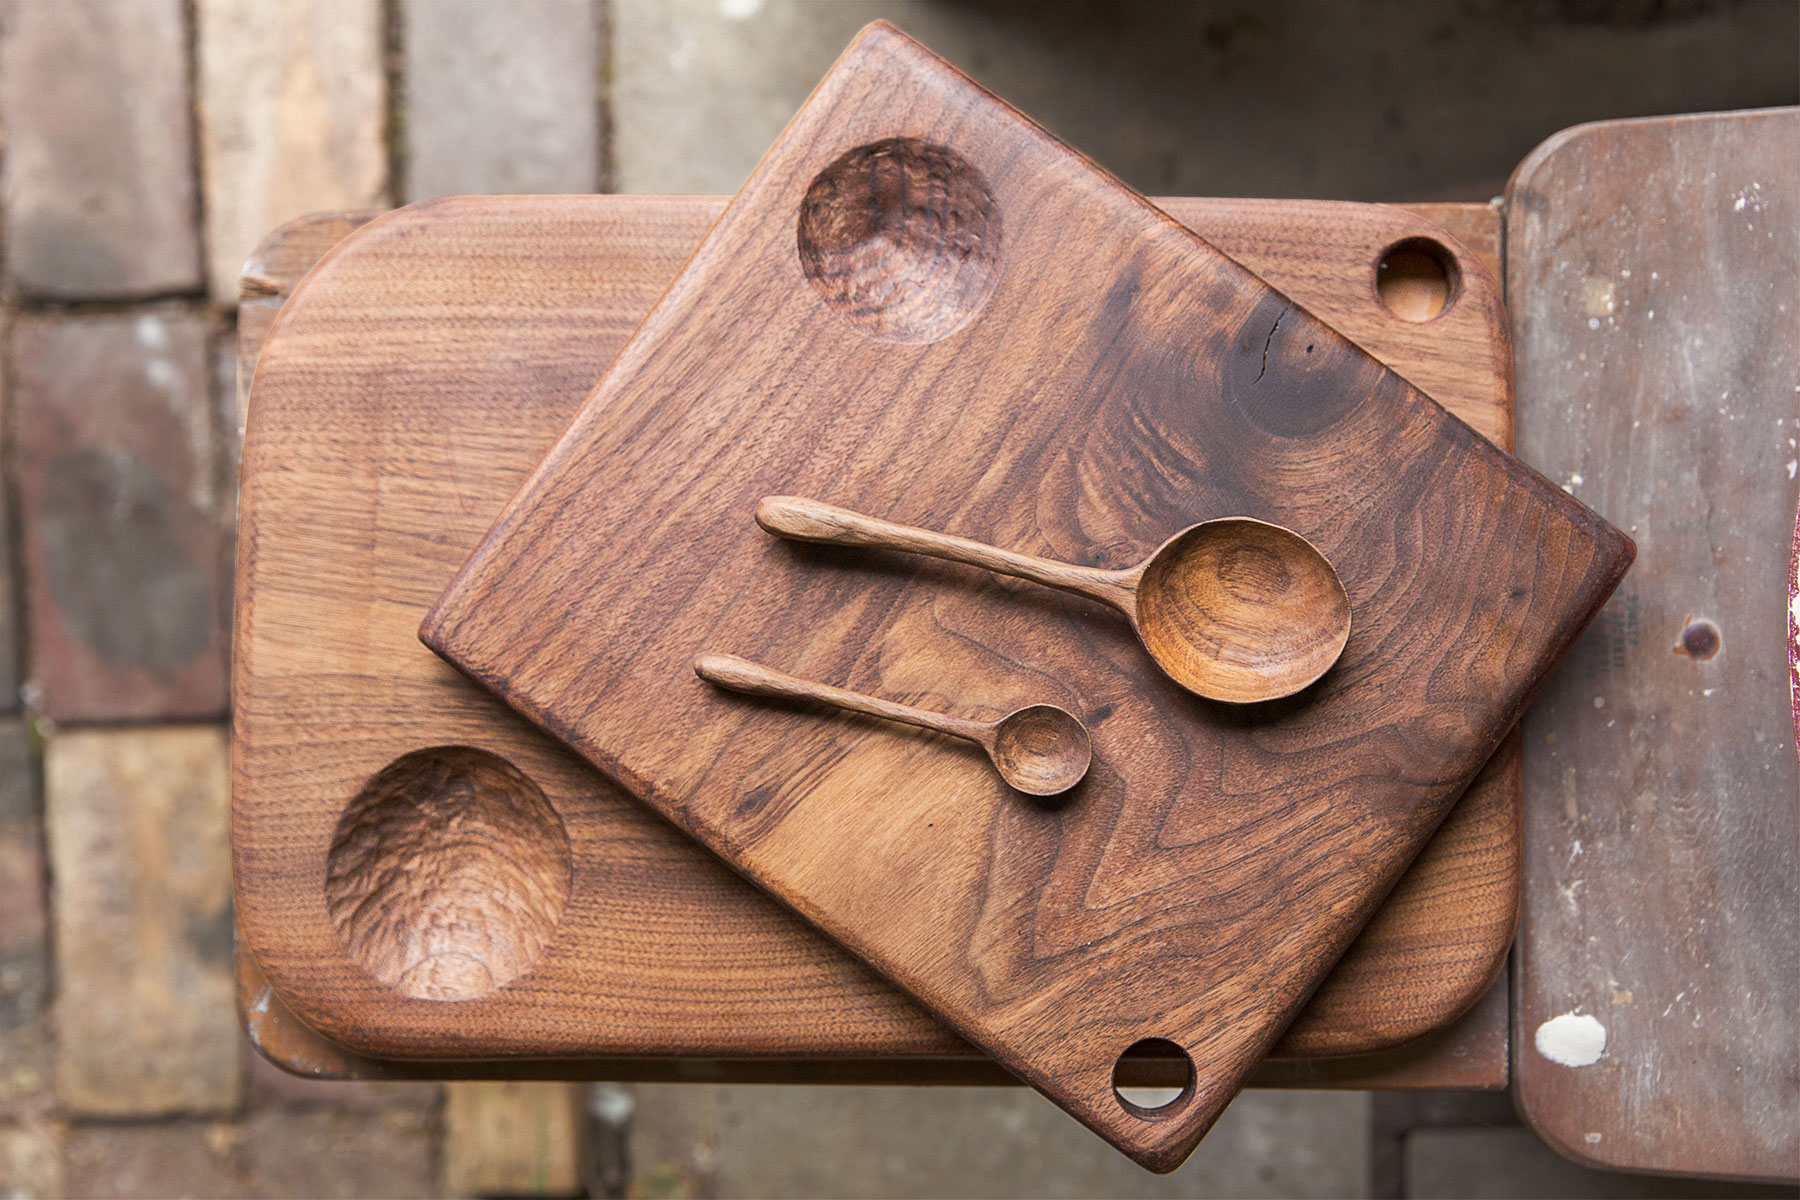 HC_walnut spoons & boards.jpg